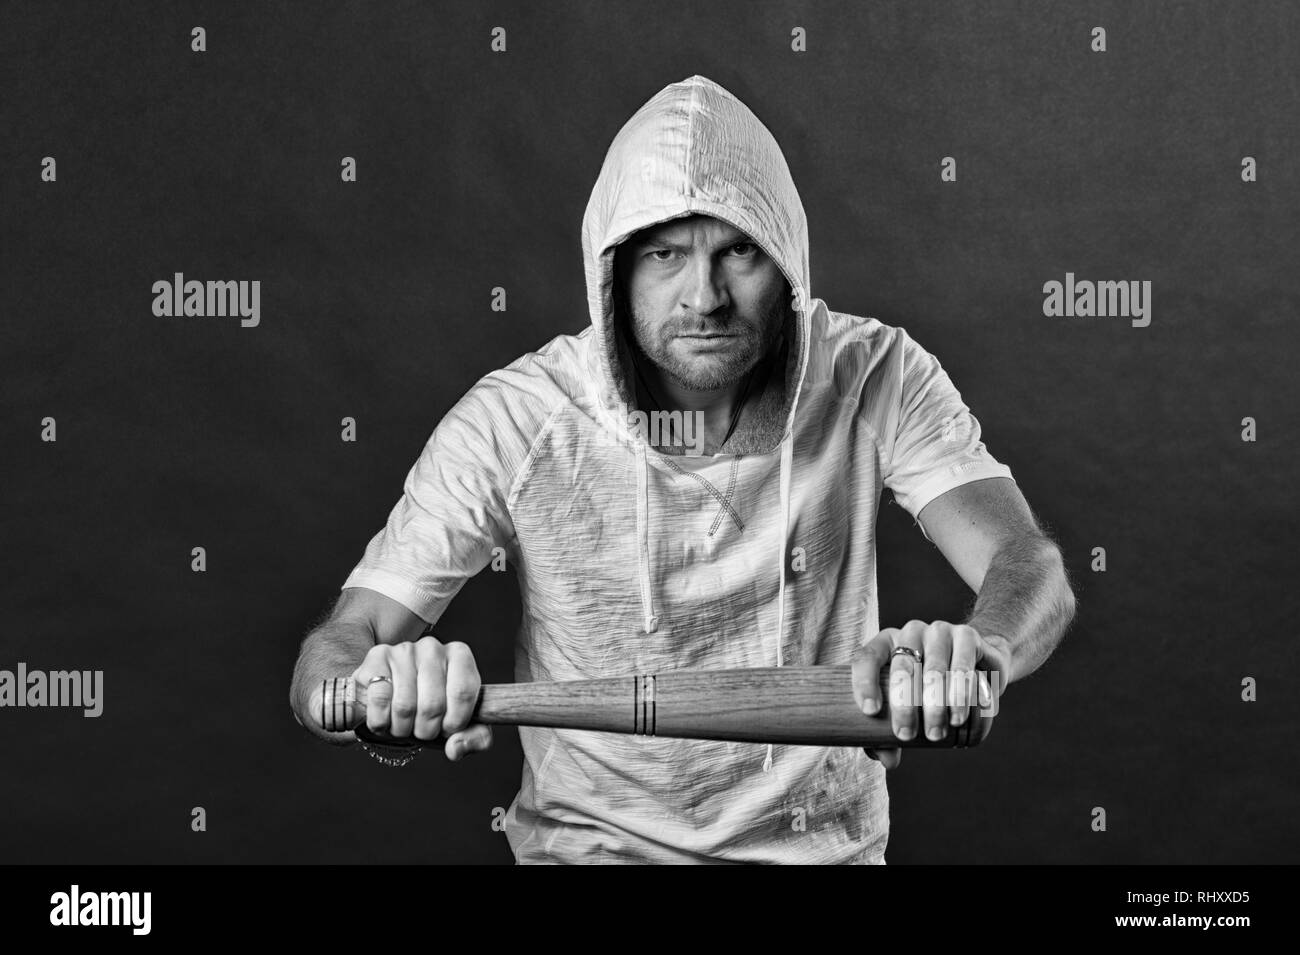 Gangster hold baseball bat. Hooligan wear hood in hoodie tshirt. Bearded man threaten with bat weapon. Aggression or anger and violence concept, black and white. - Stock Image